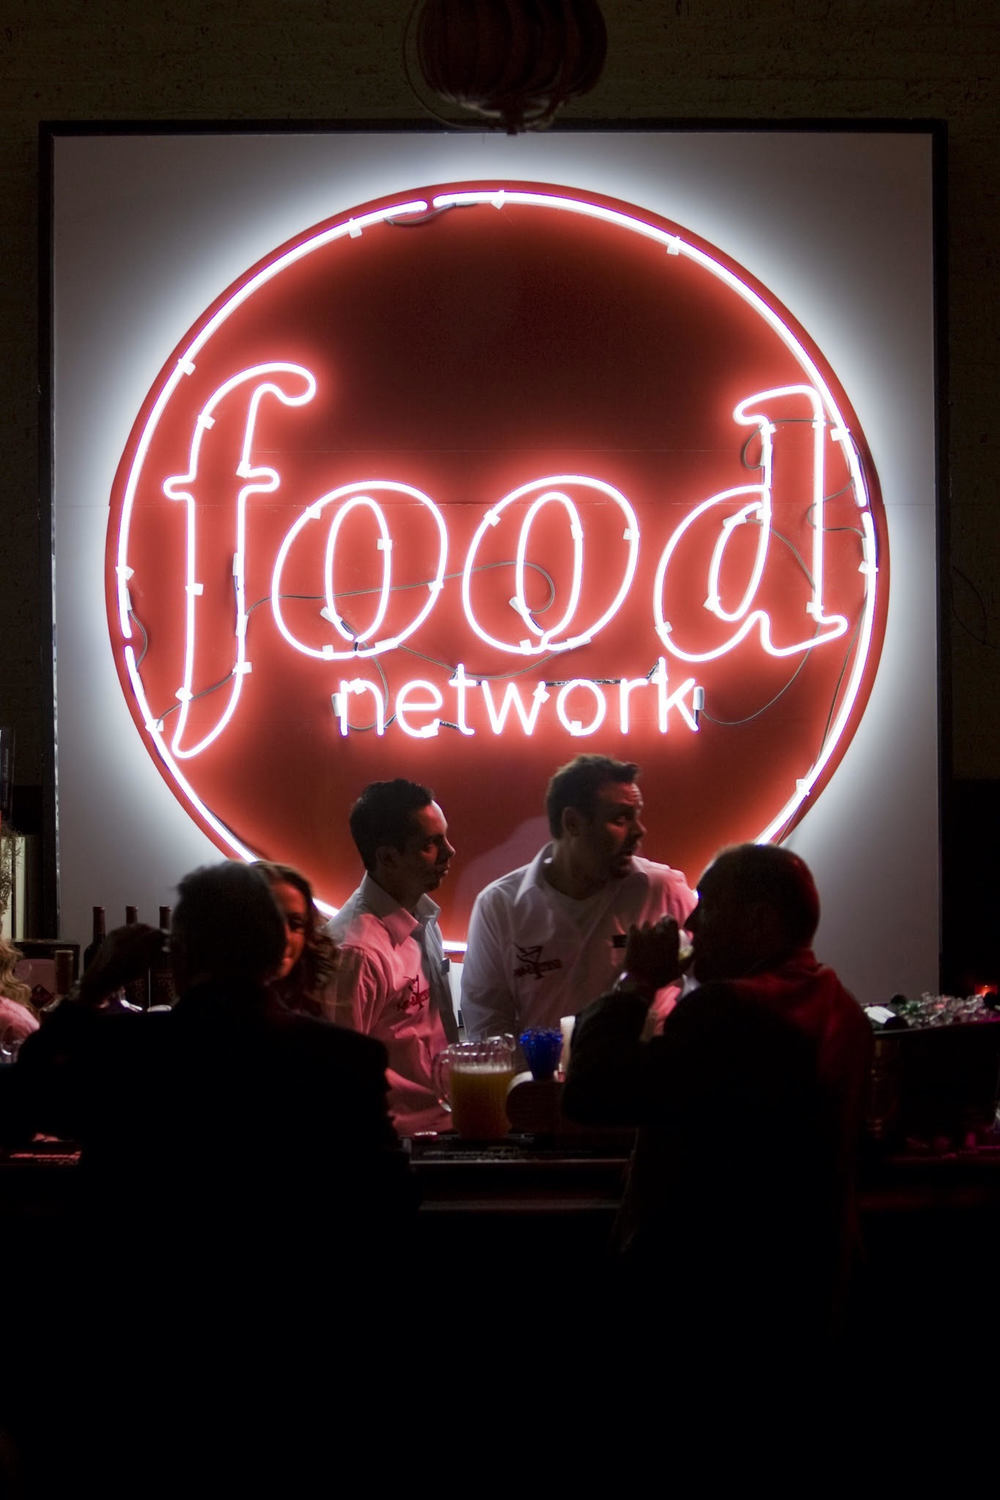 food network neon sign.jpg